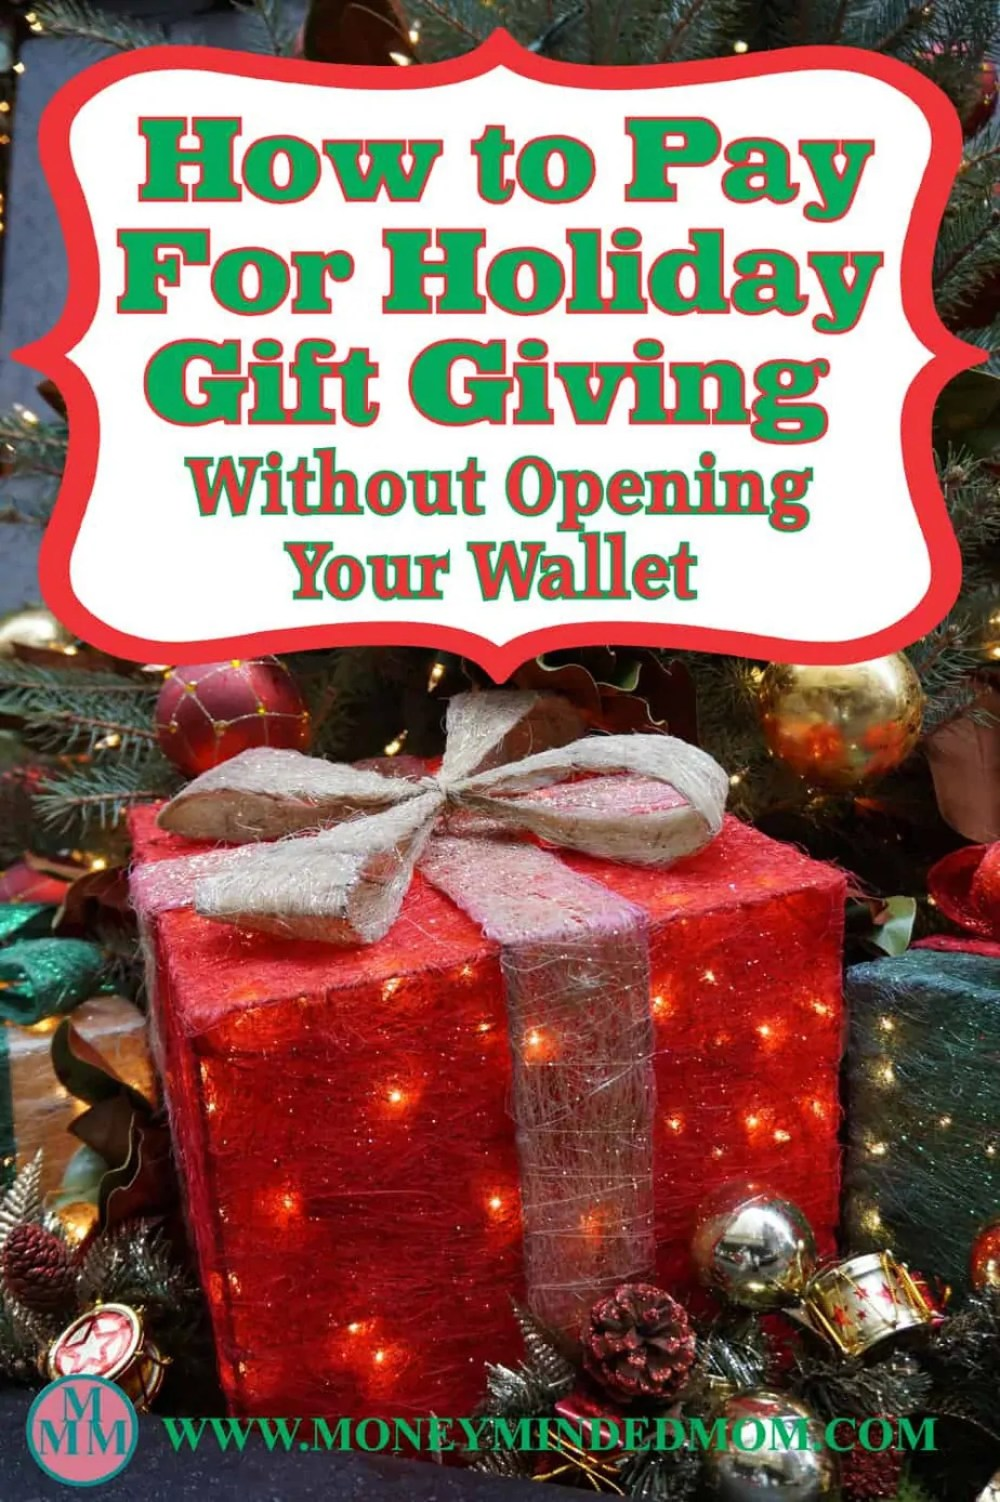 How To Pay For Holiday Gift Giving